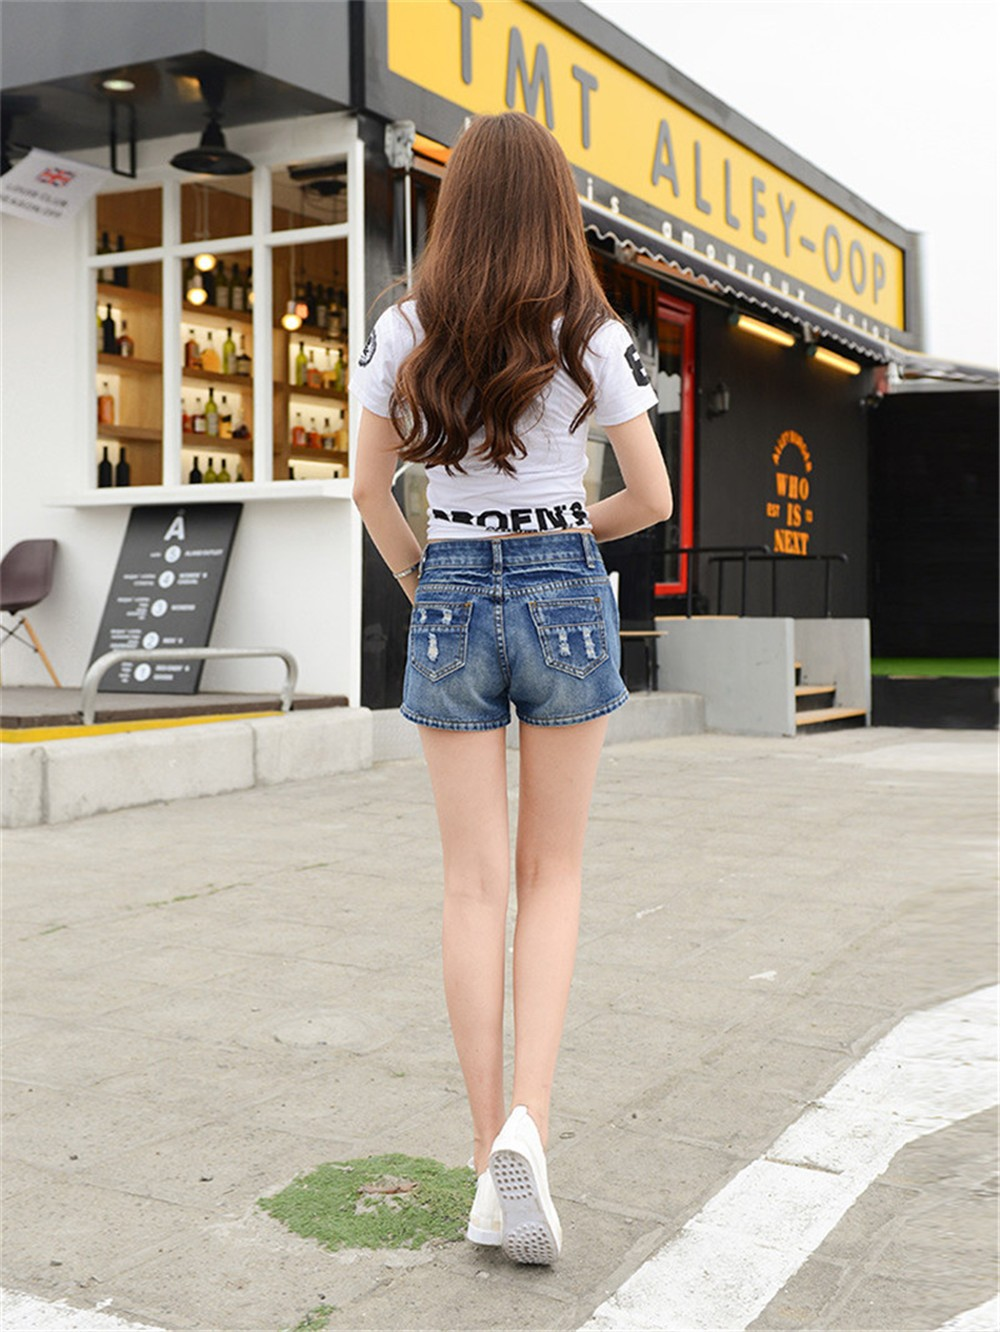 Mainland Retro Mid waist Women Short Jeans Woman Denim Female Wild Short-Pants Summer Loose Short Fashion Plus size Short jeans  (18)